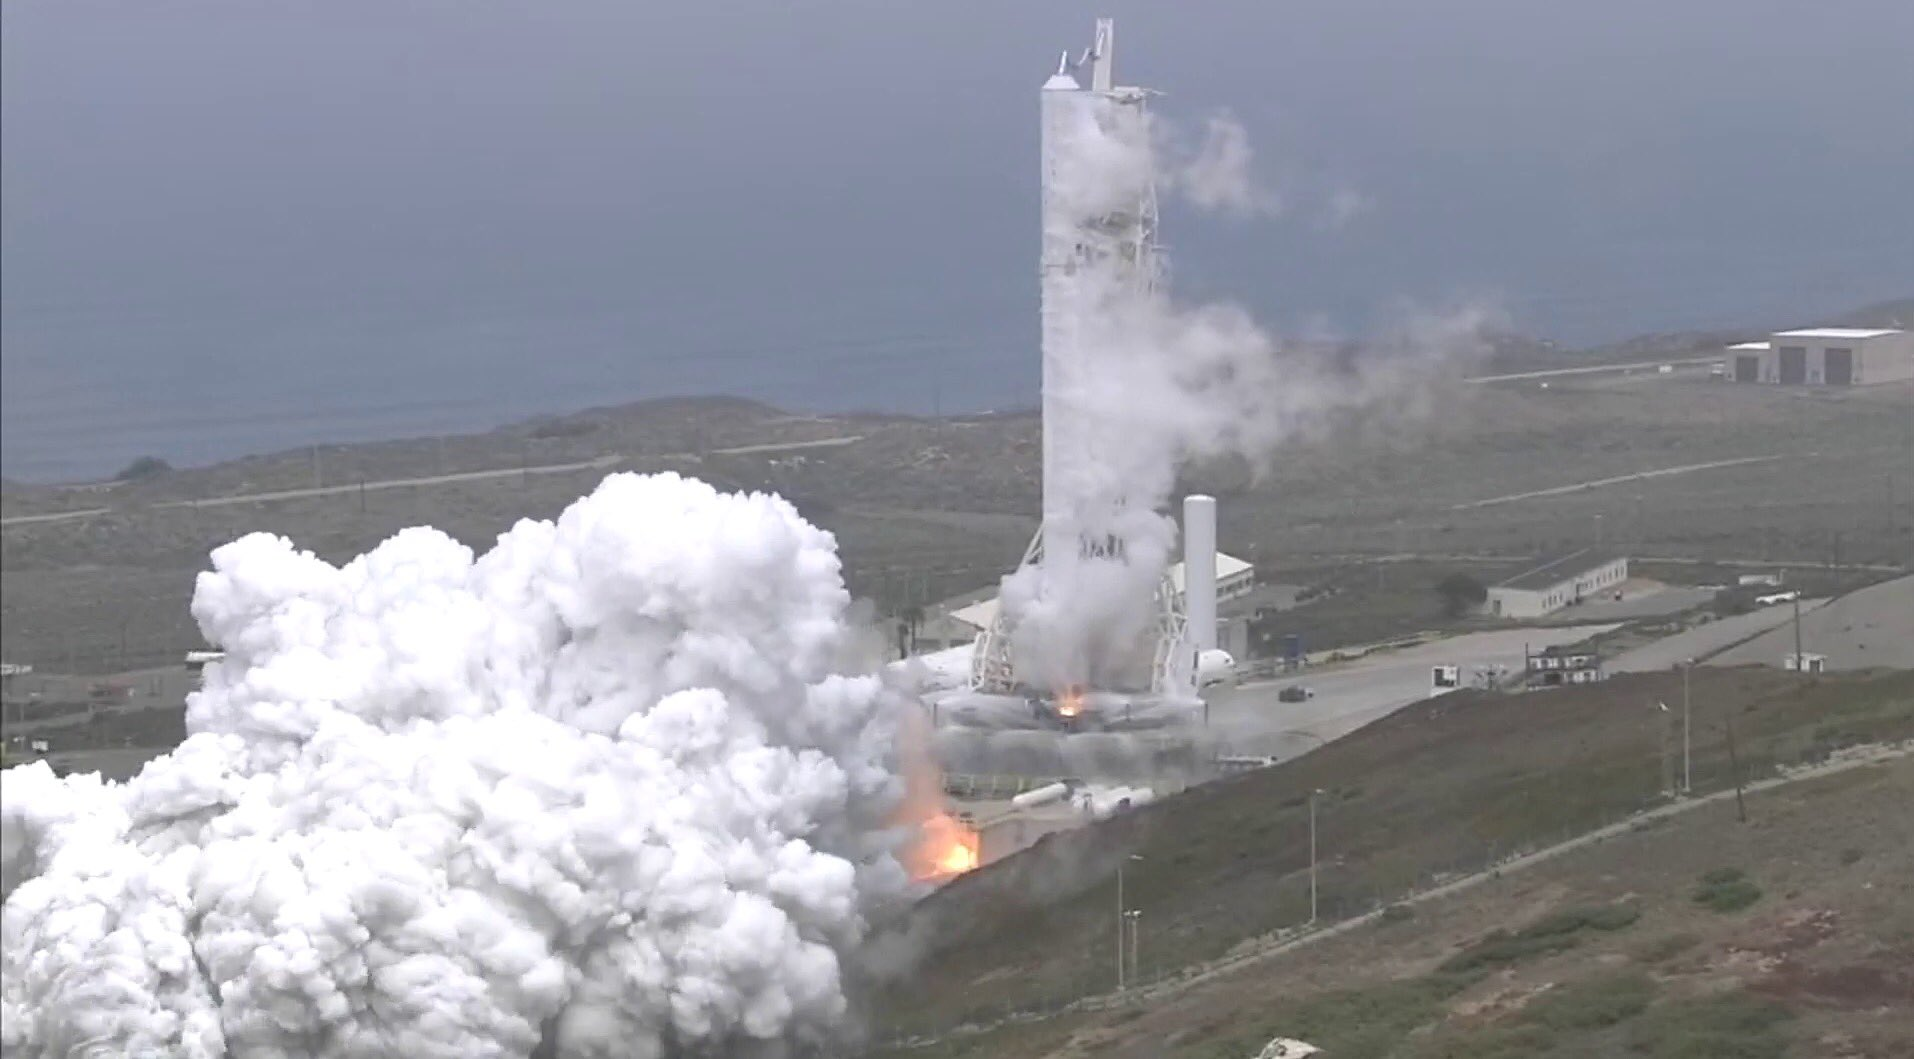 Formosat-5 static fire (SpaceX)